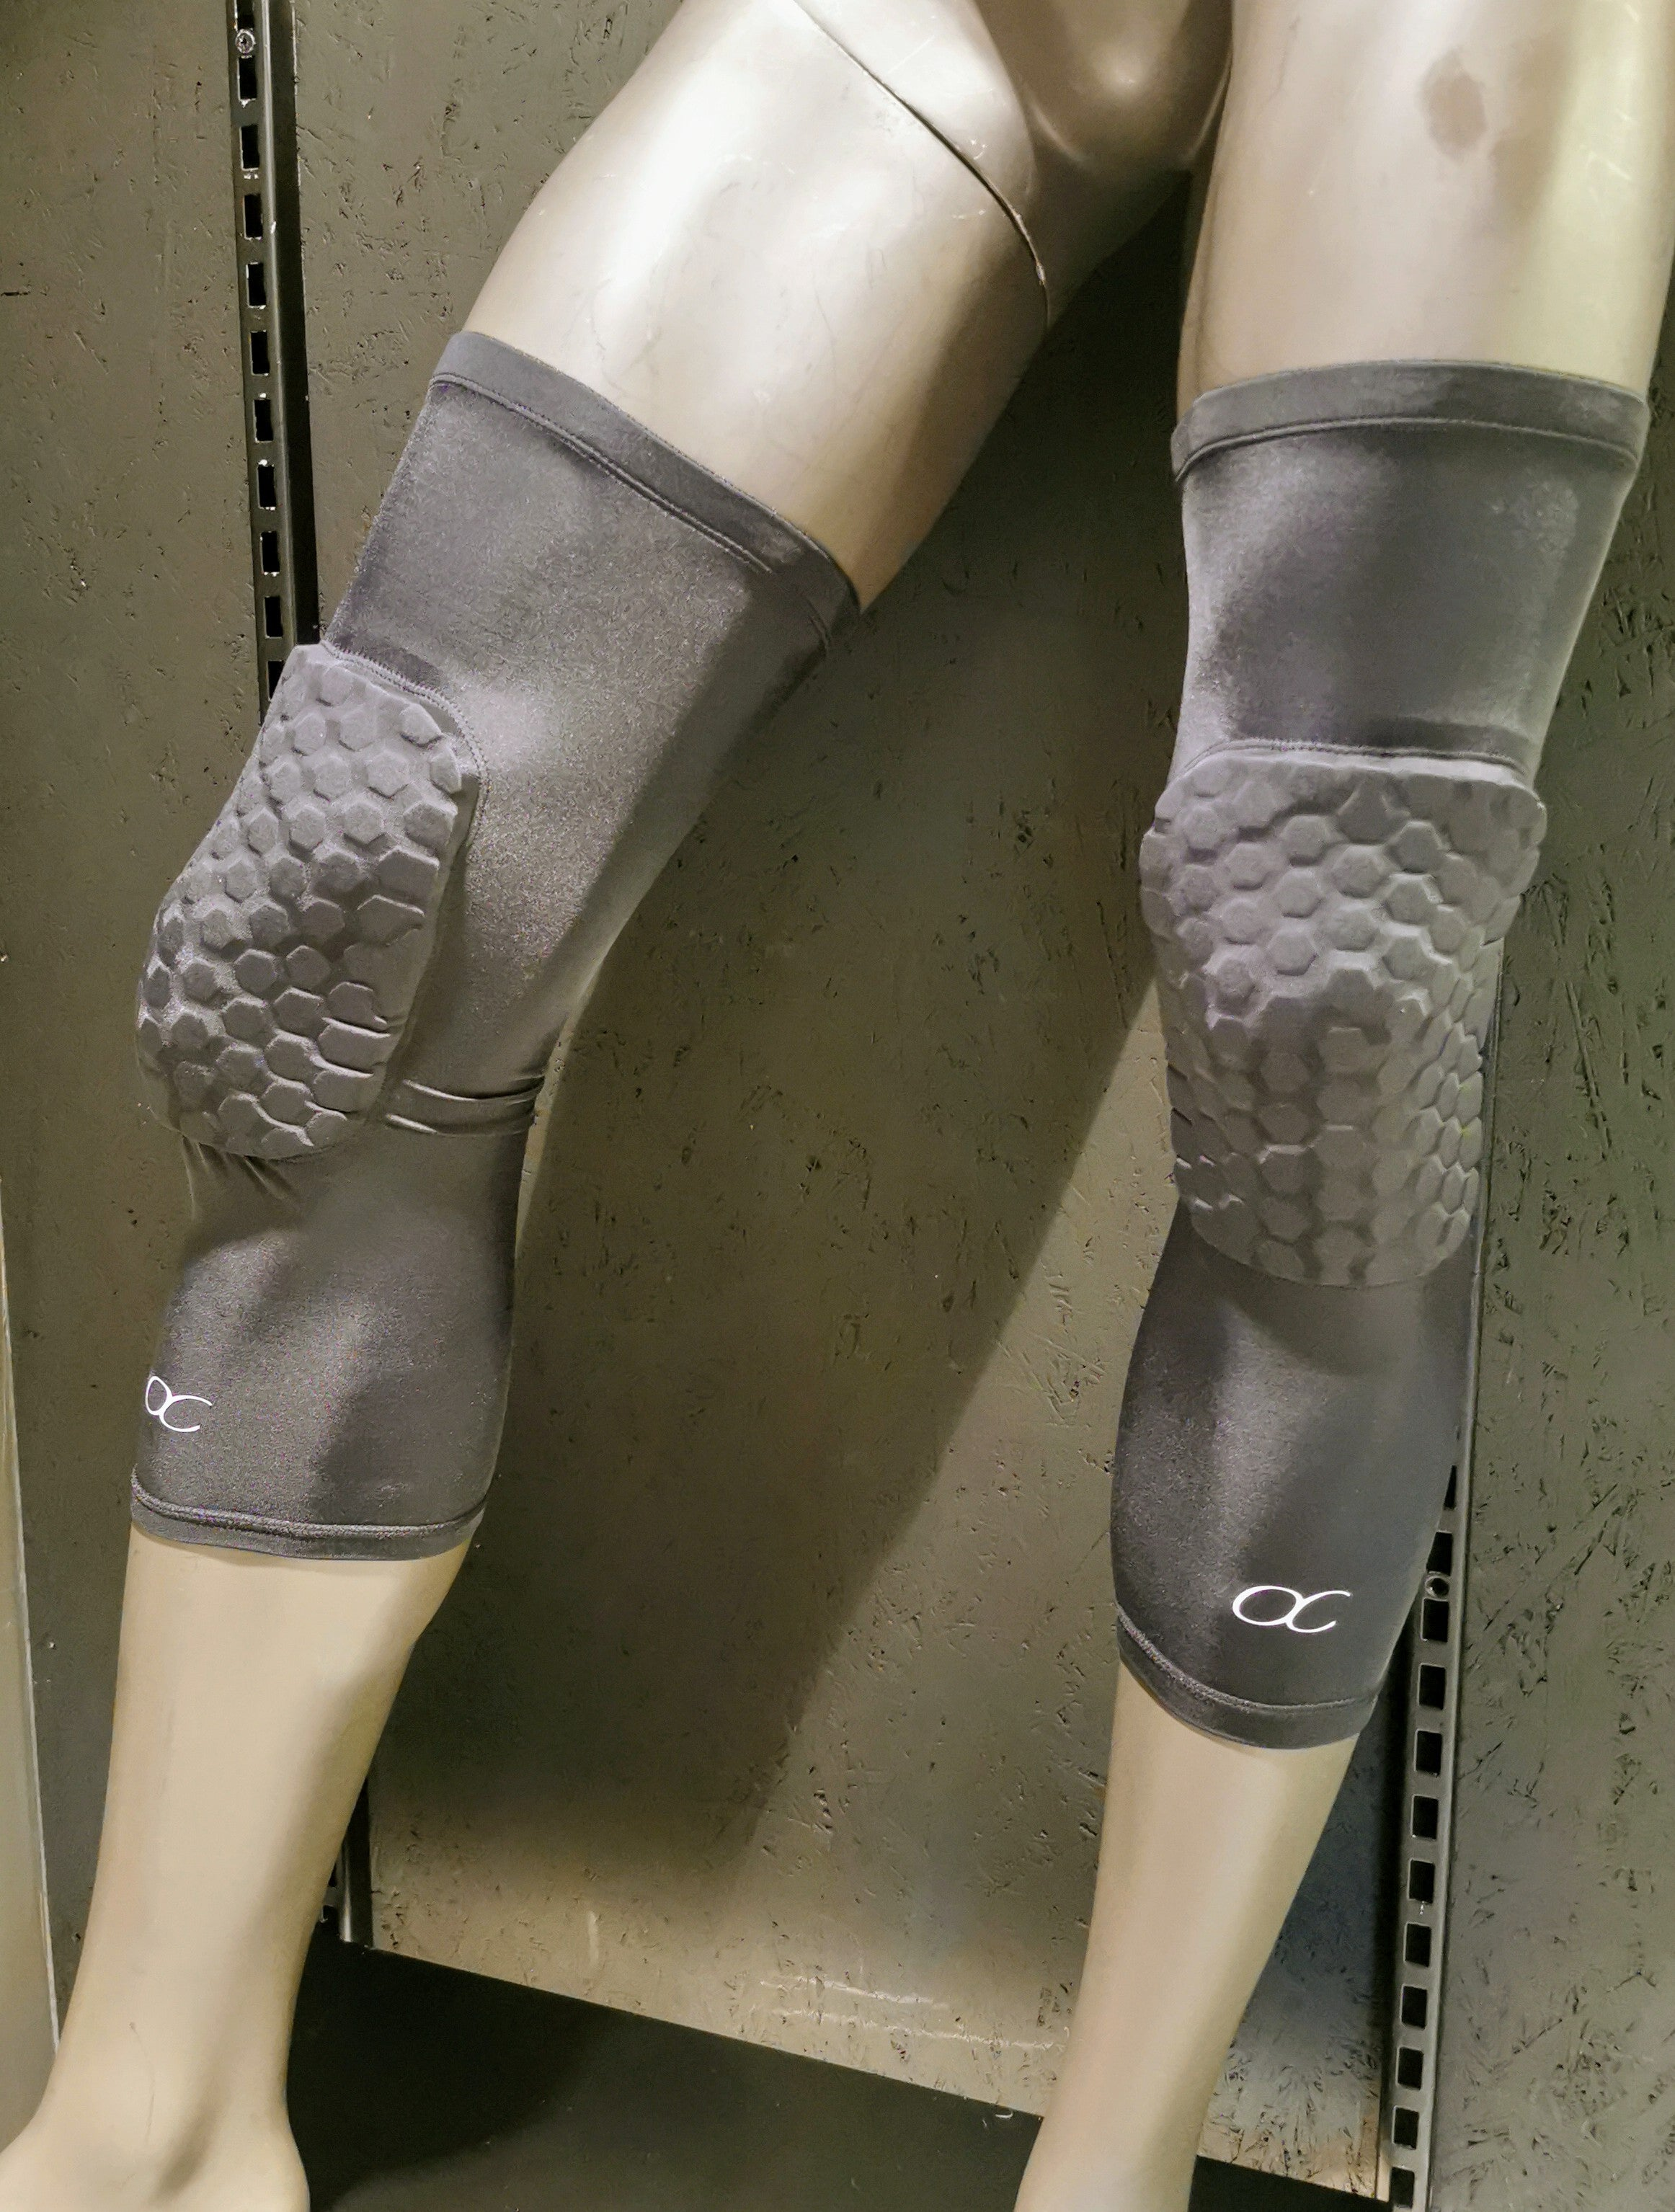 OC Long Knee sleeves pads Double